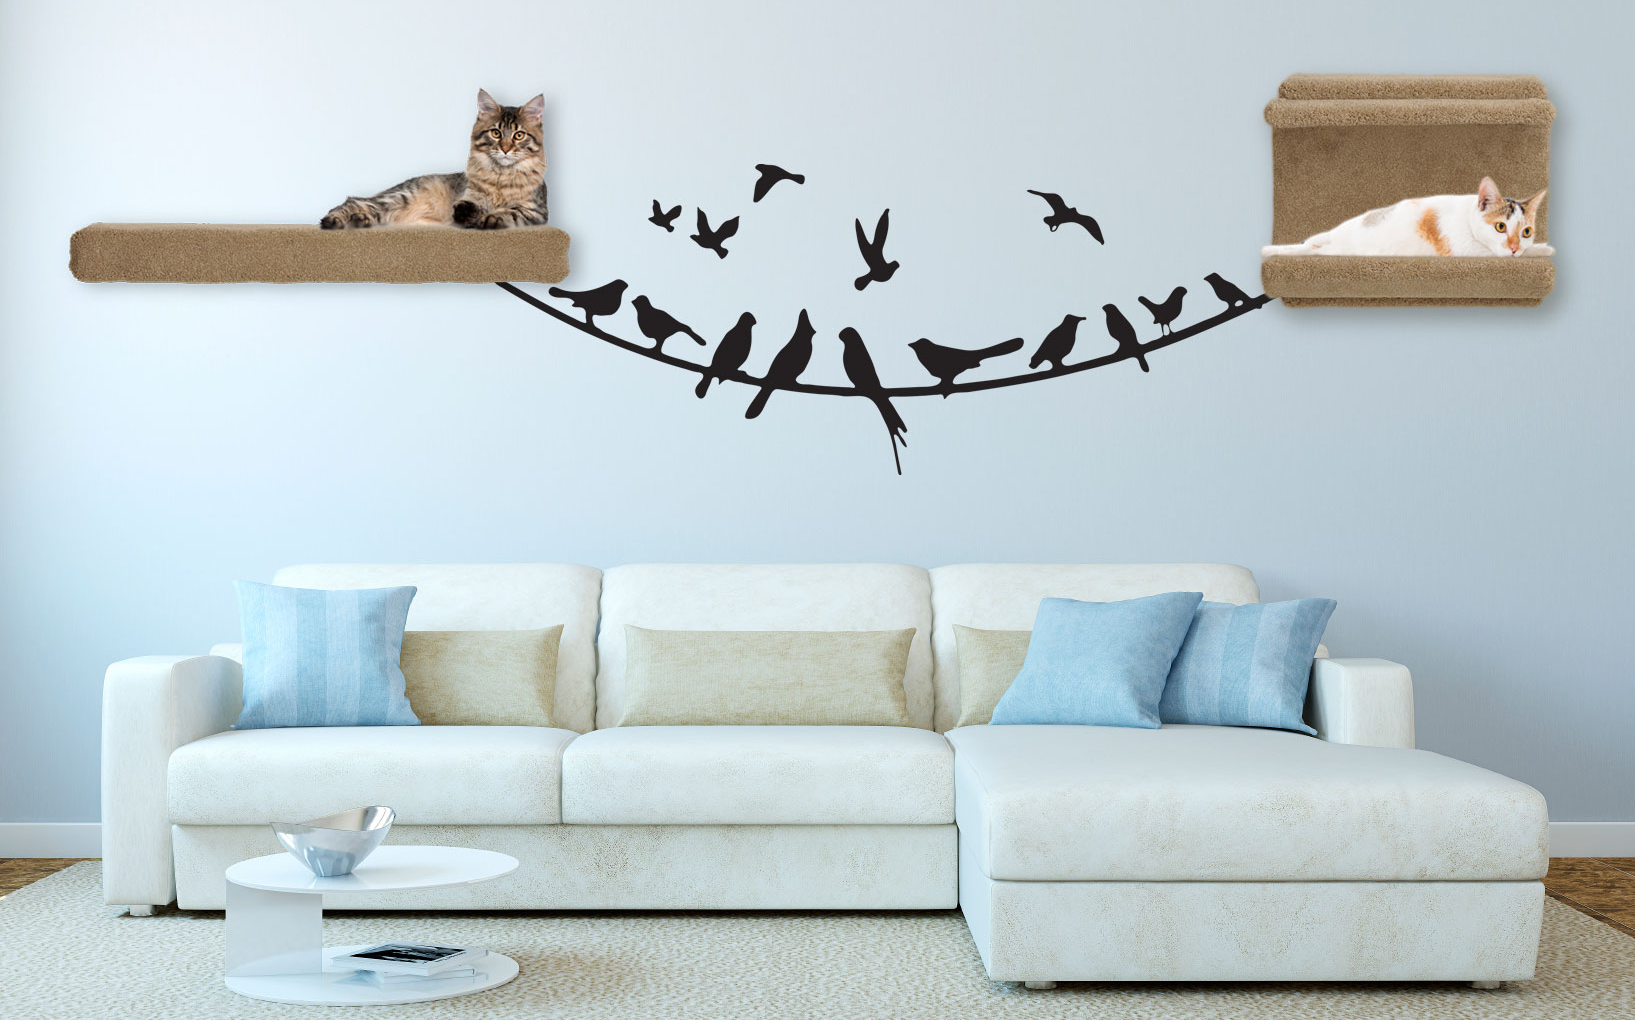 Now That You Ve Installed Your Cat Wall Shelves Consider Accessorizing By Adding Coordinated Fun Themed Decals